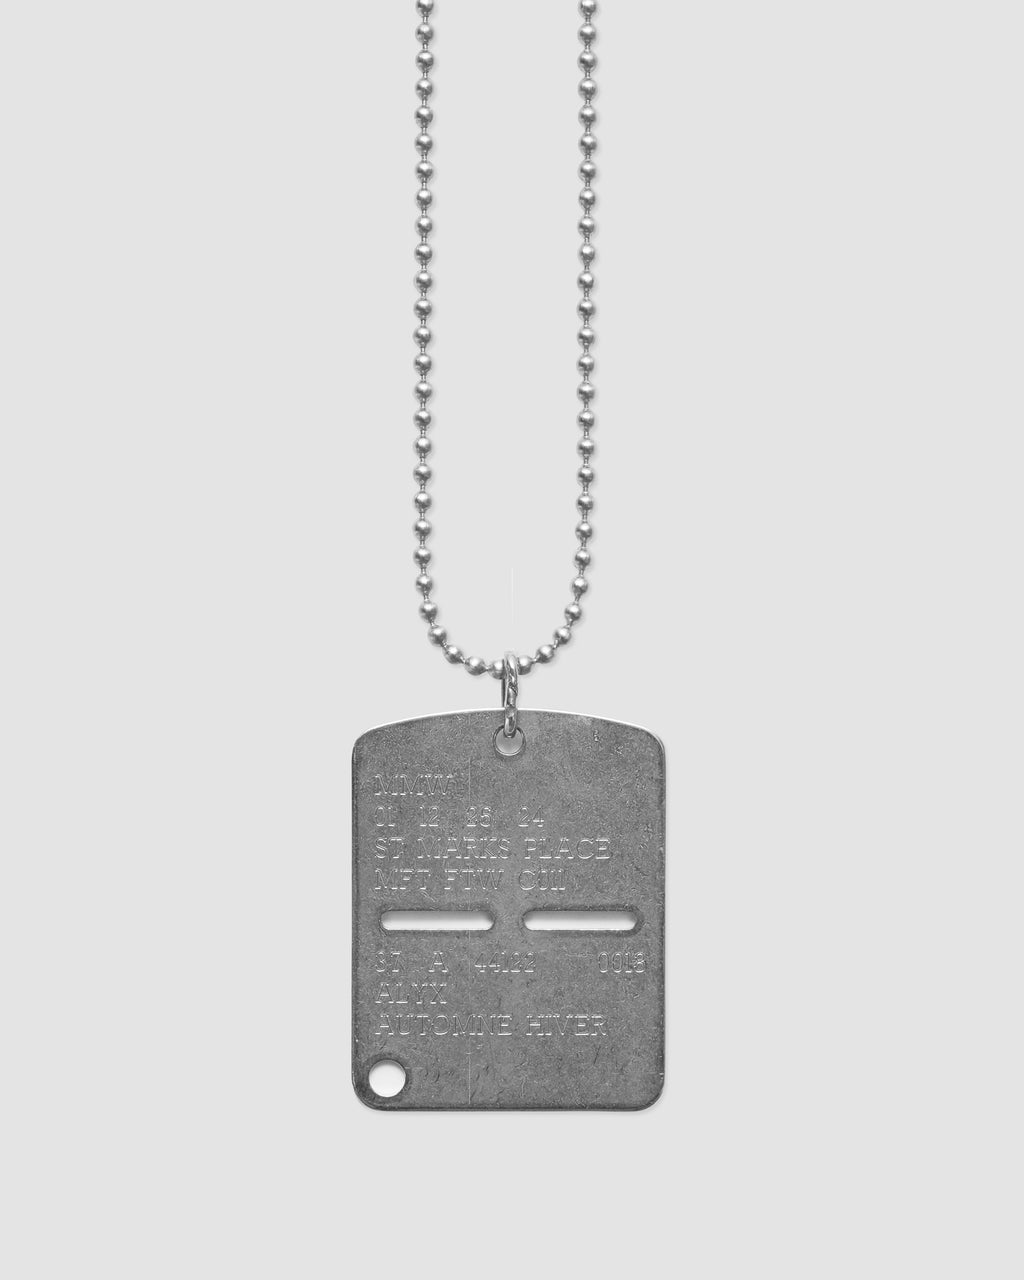 MILITARY DOGTAG